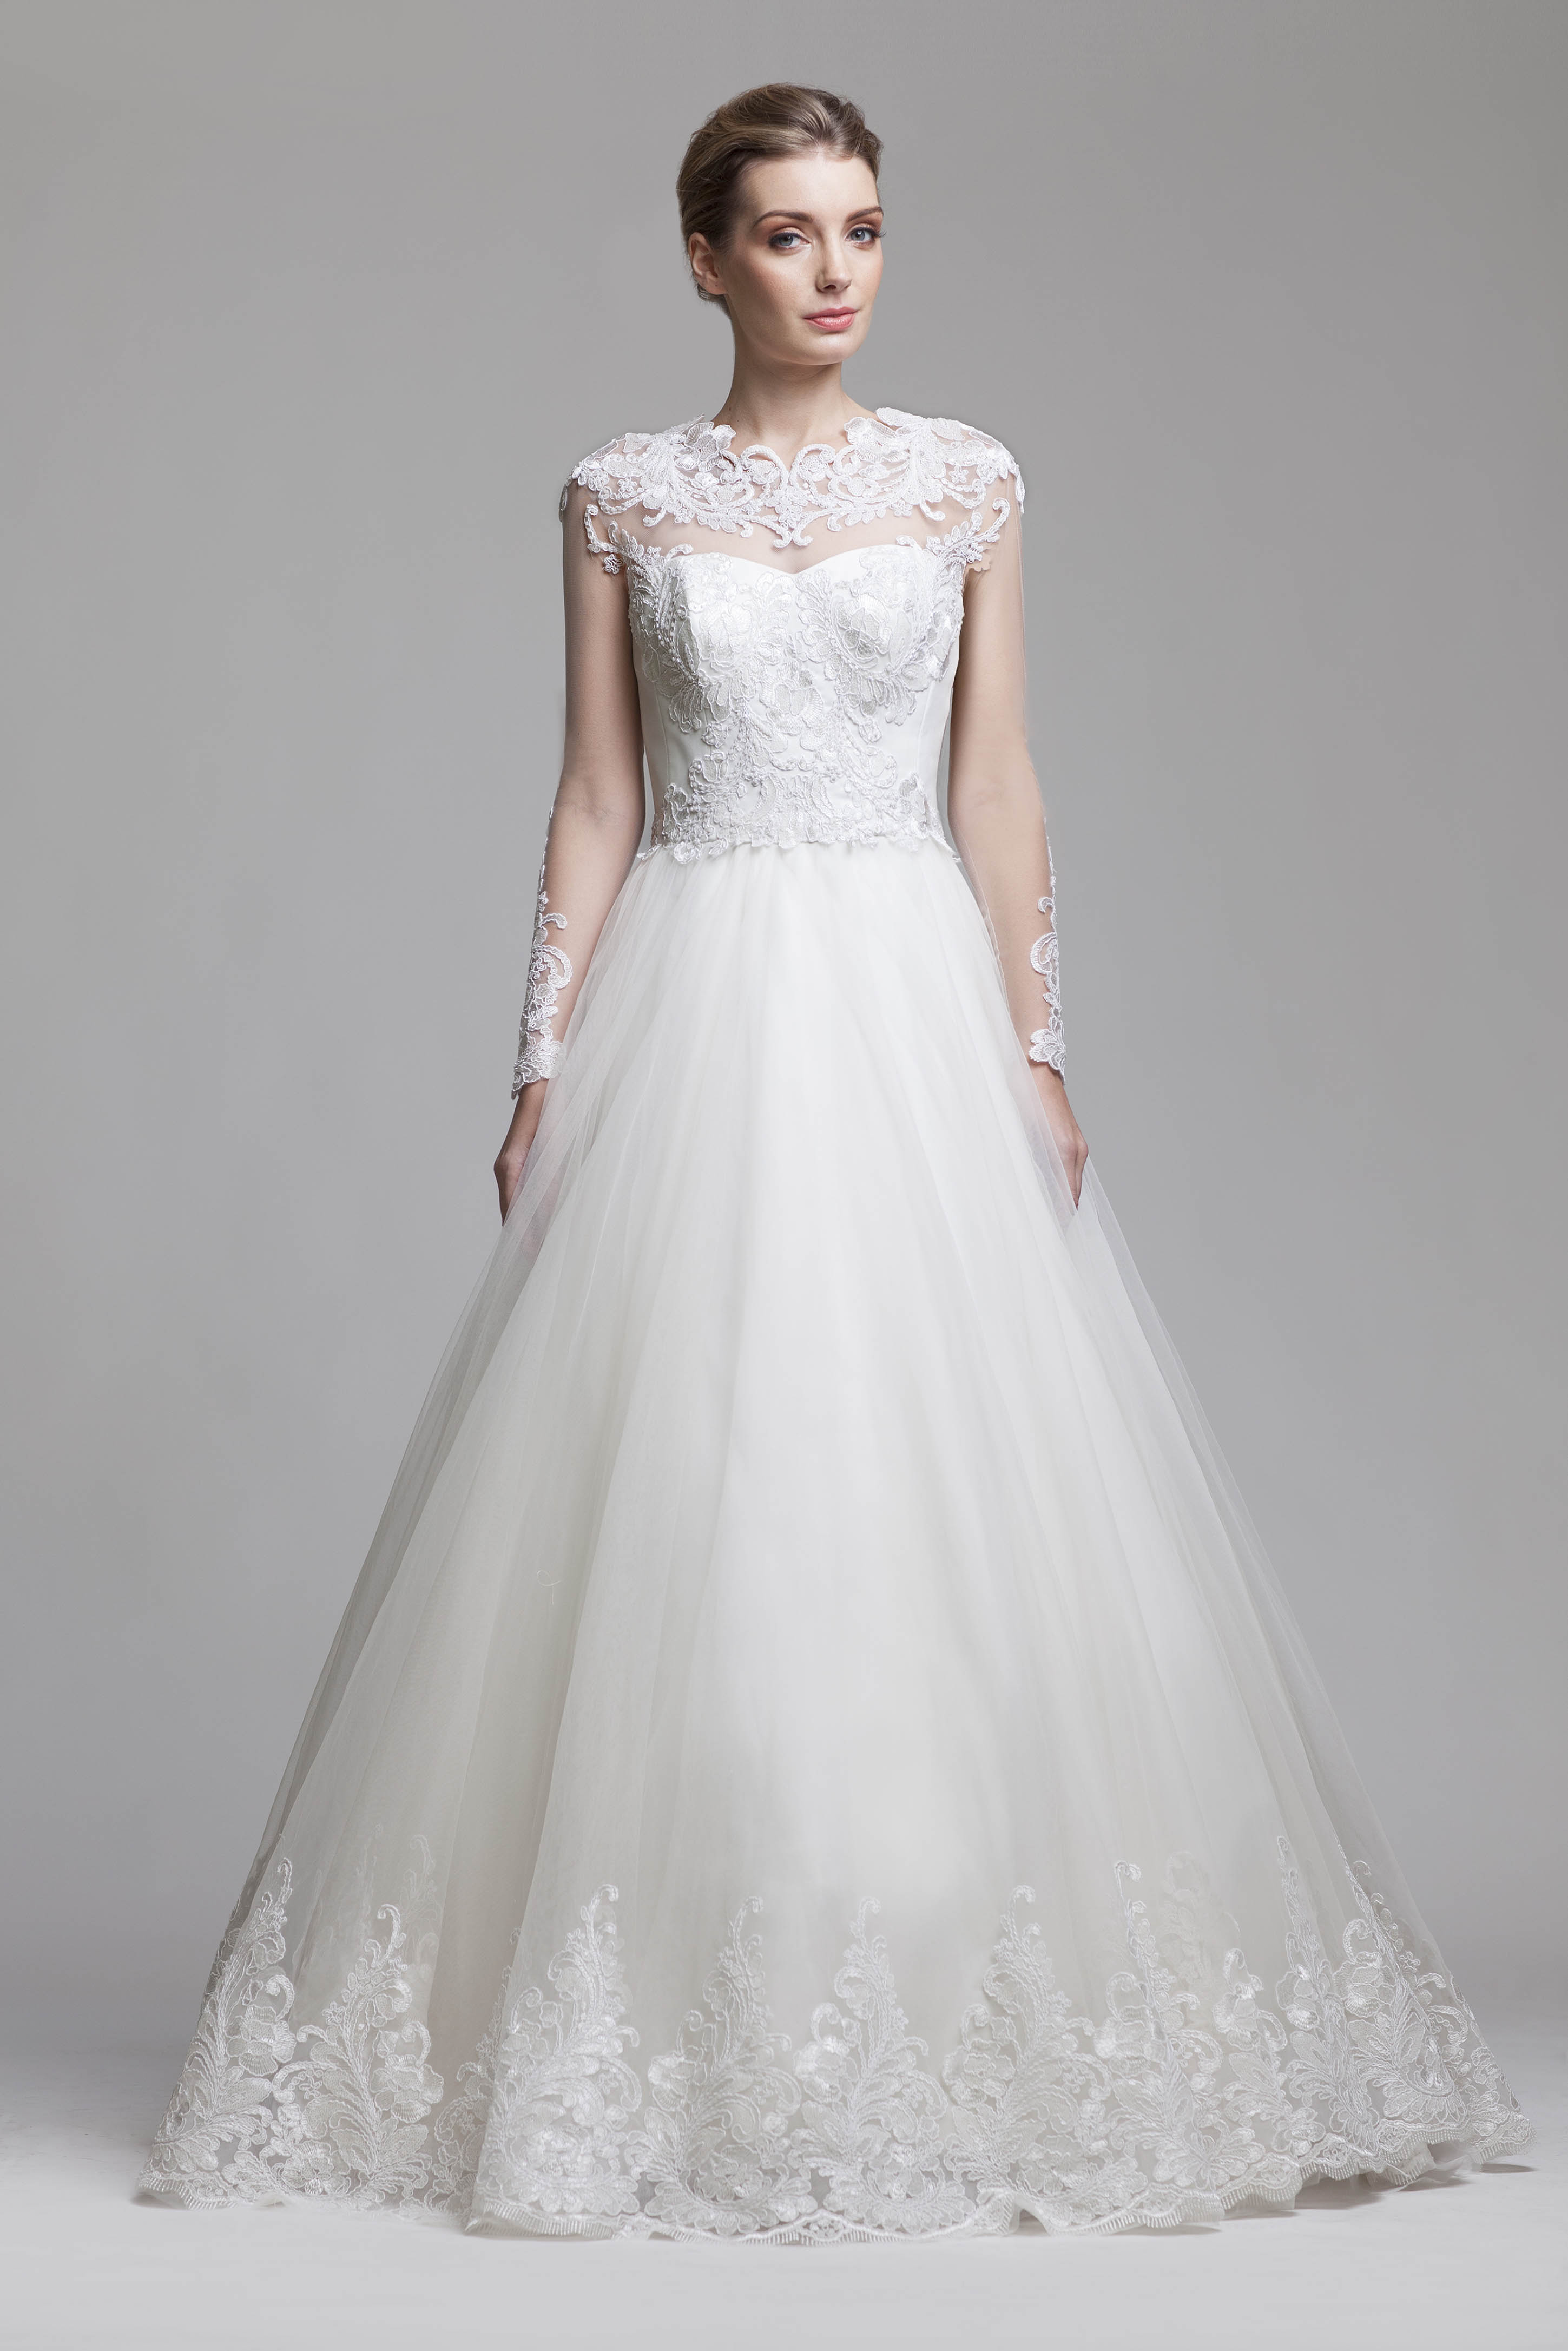 Wedding gowns images philippines pearl